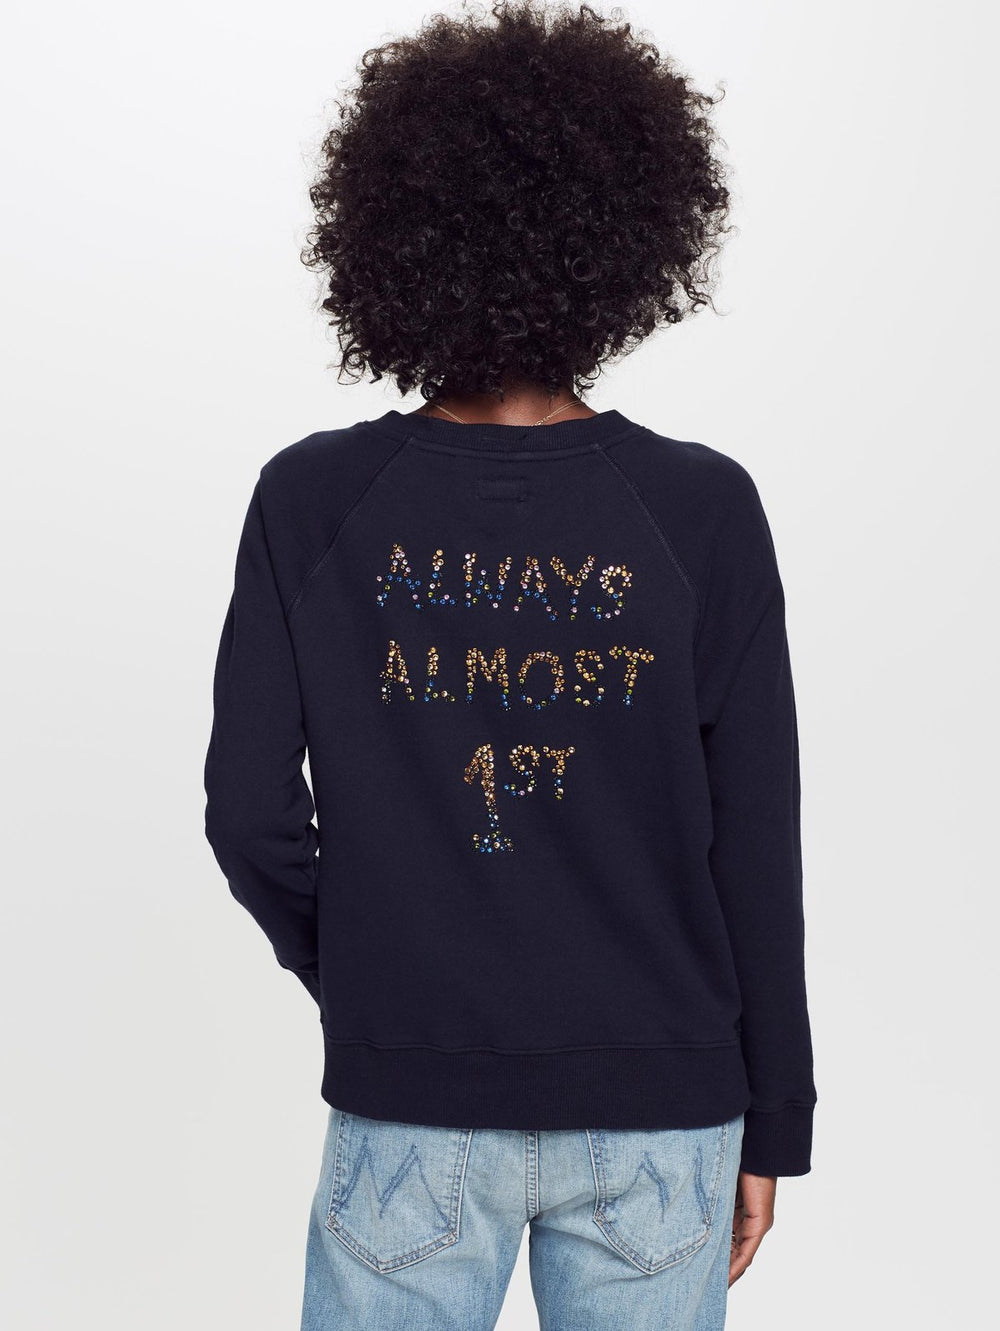 The Square Sweatshirt - Almost Always First